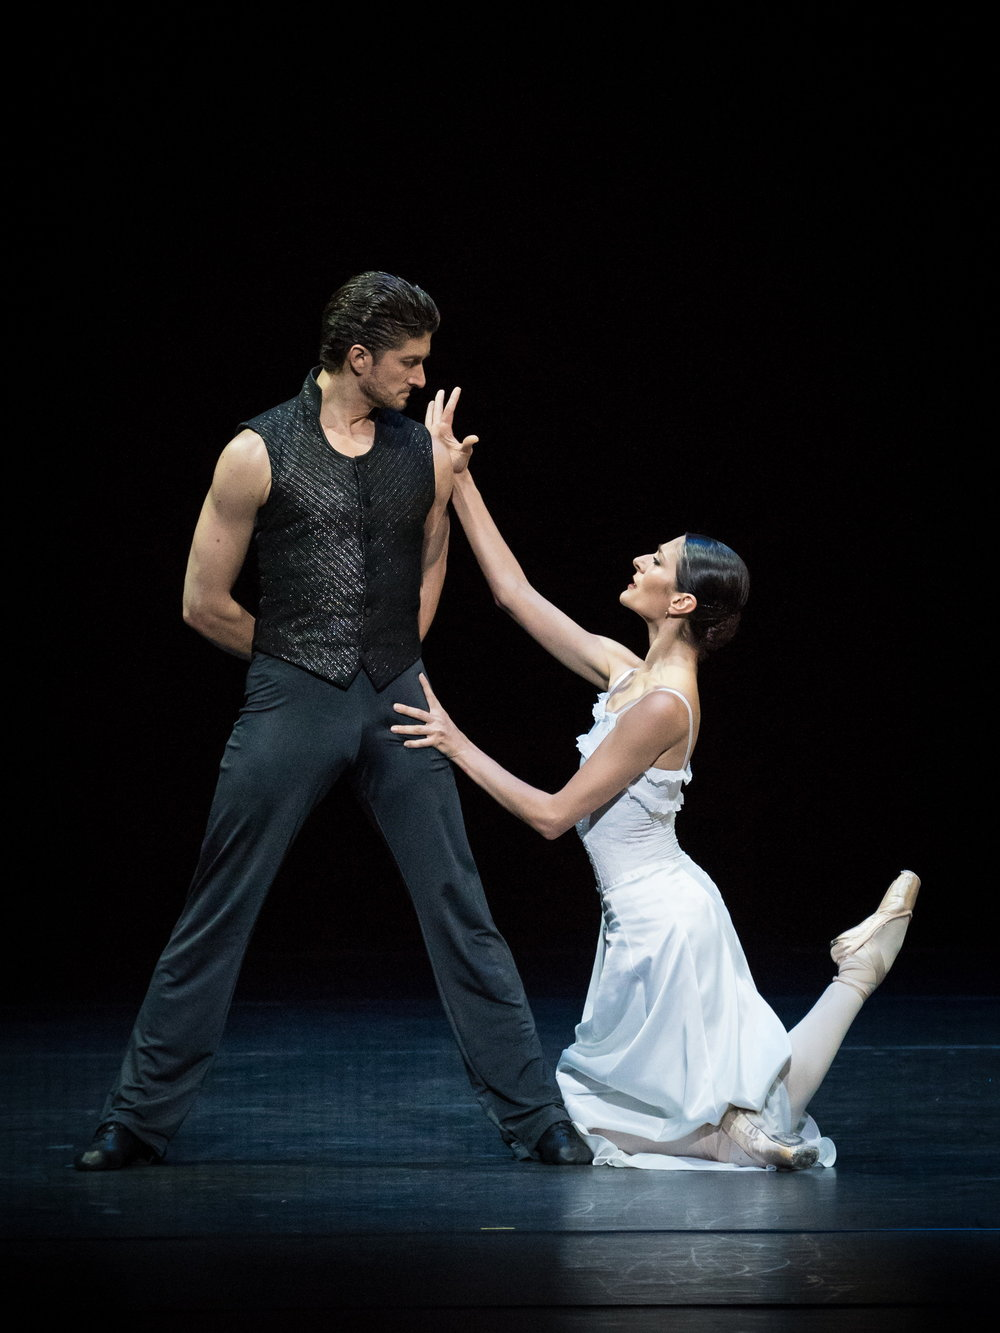 Ketevan Papava and Eno Peçi. Copyright: Vienna State Ballet/Ashley Taylor